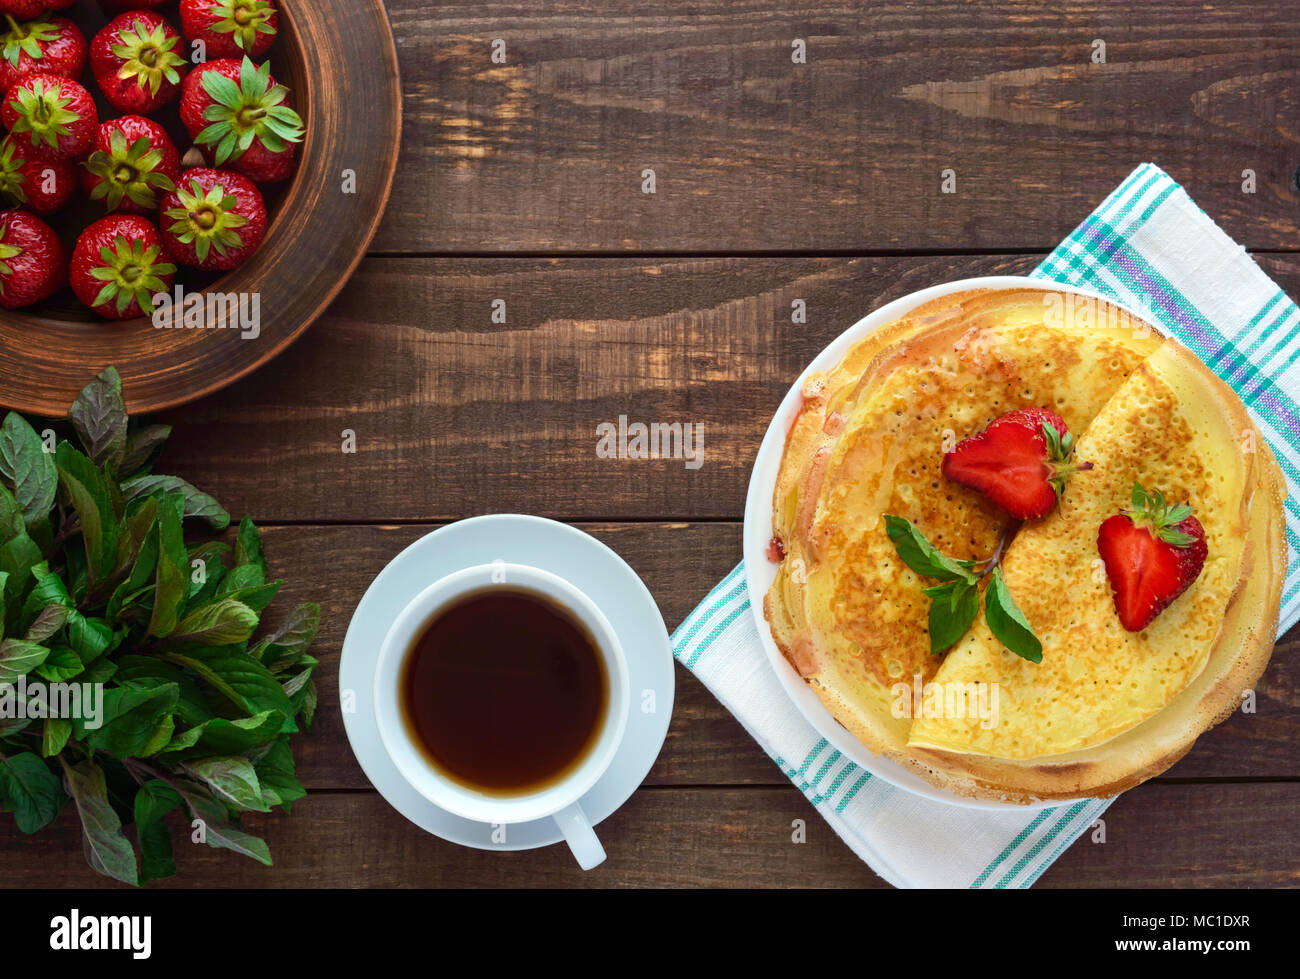 Pile of golden pancakes with strawberries and strawberry jam, decorative sprig of mint. The top view - Stock Image